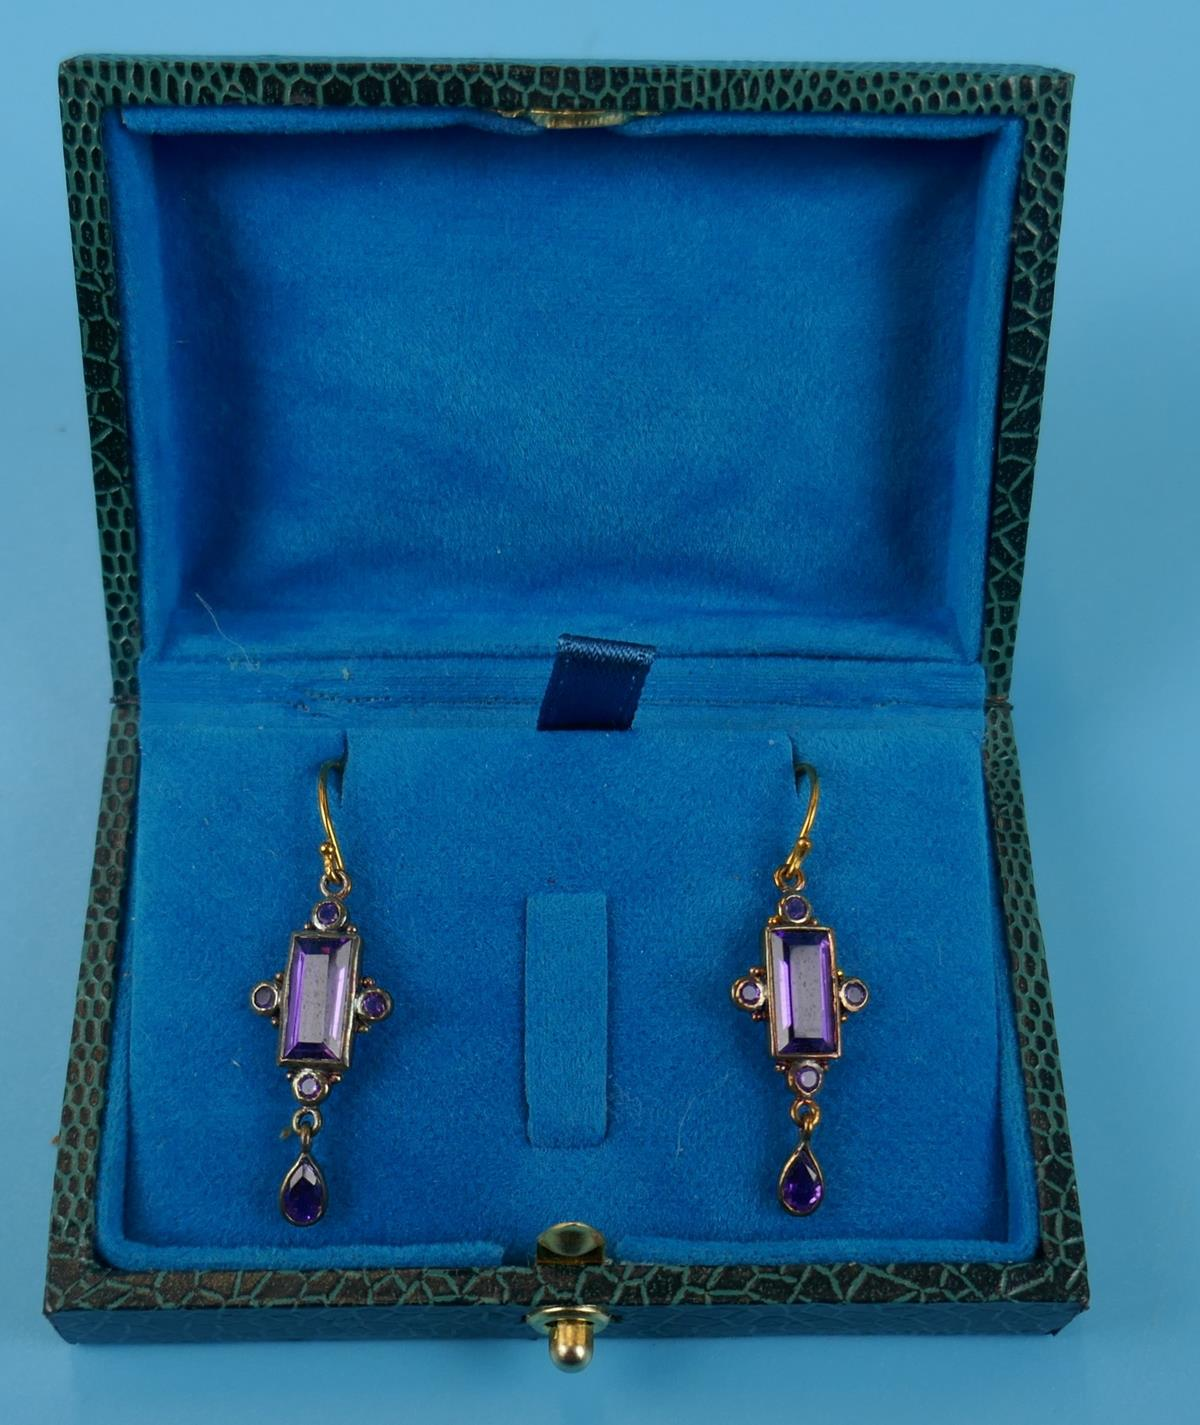 Pair of amethyst drop earrings - Image 2 of 4